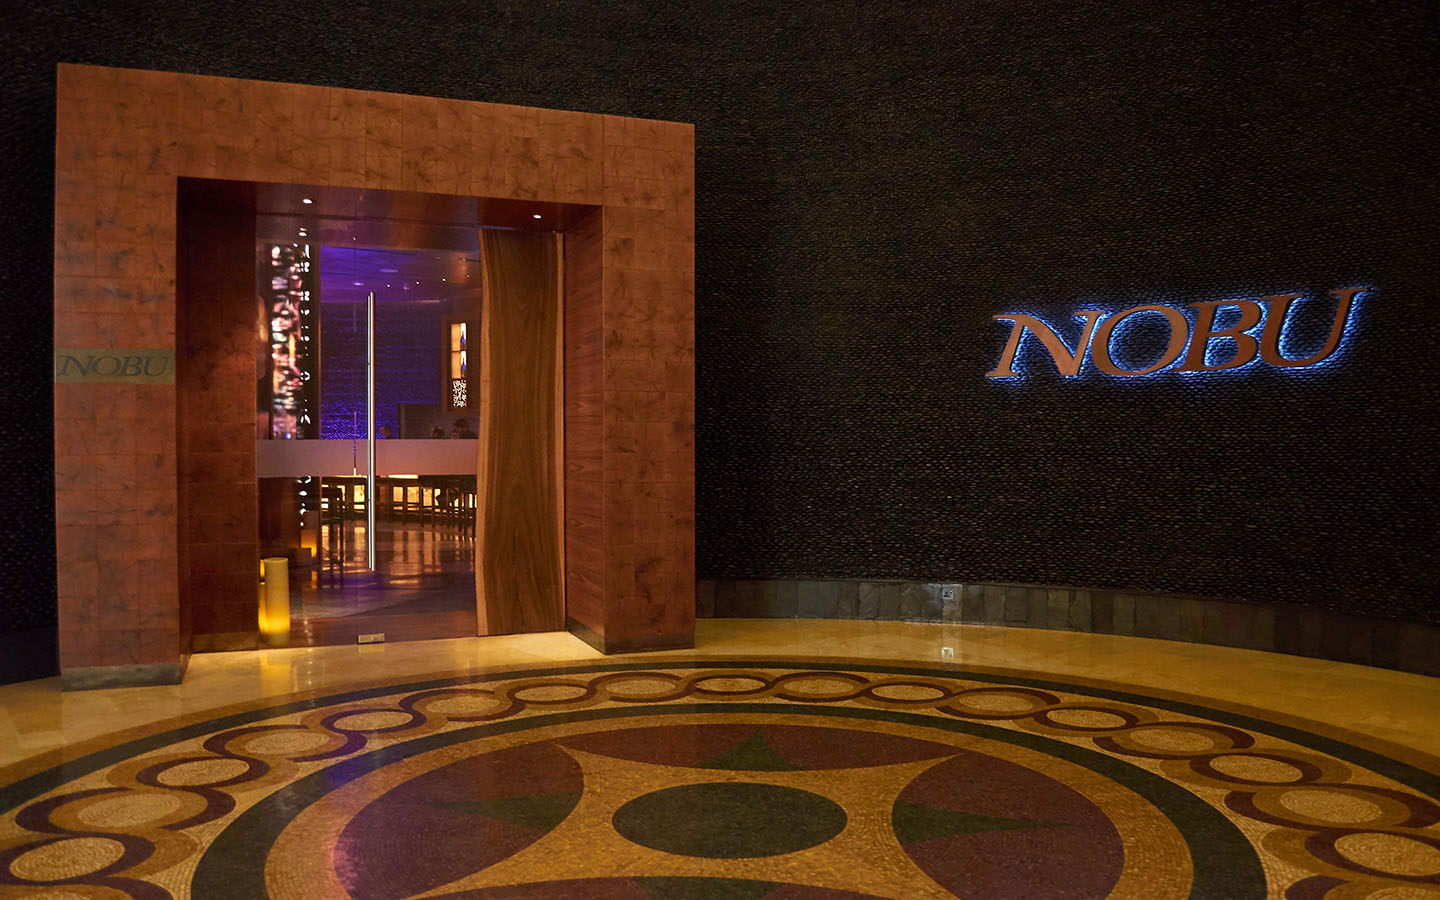 Entrance of Nobu restaurant Palm Jumeirah